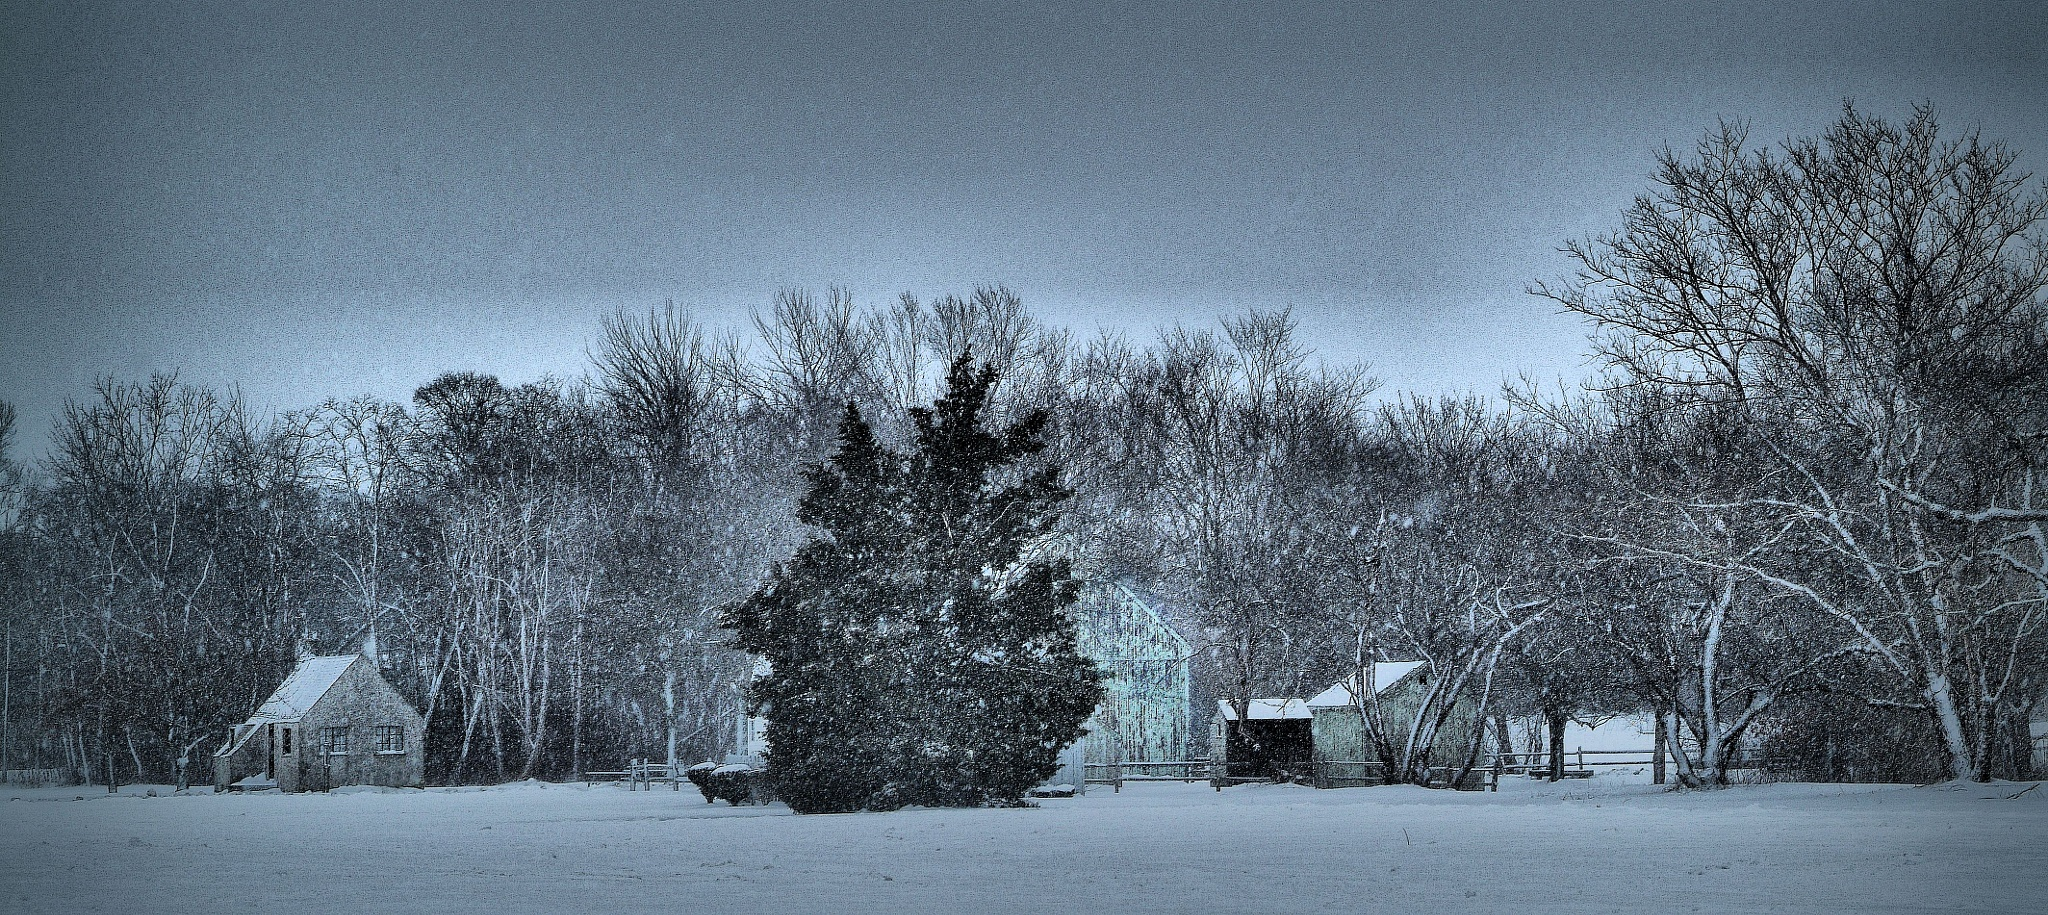 Snowy Homestead too... by C michael anthony